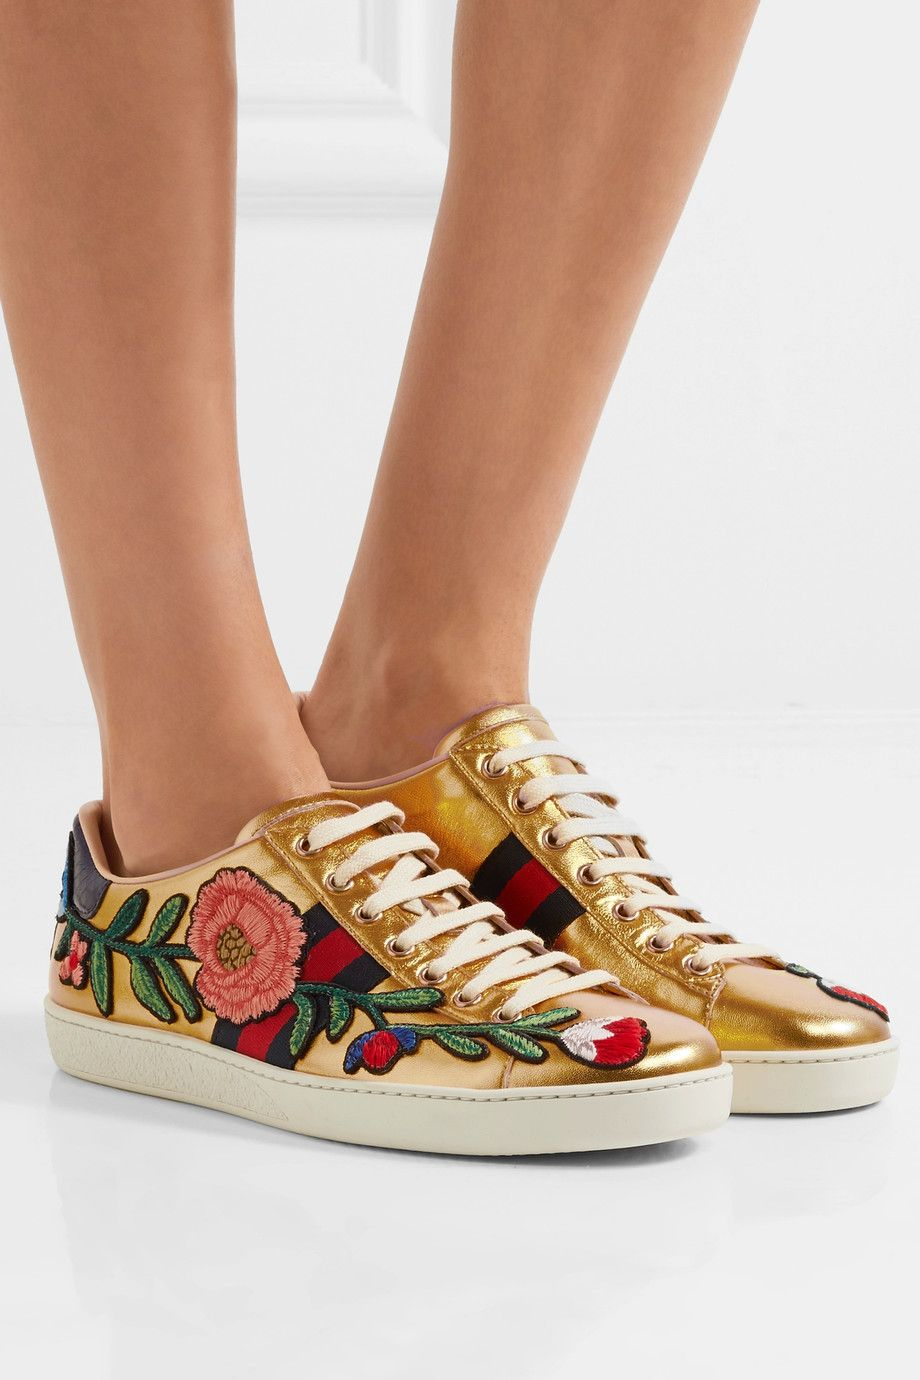 9c1612ee0 Gucci - Ace watersnake-trimmed appliquéd metallic leather sneakers ...